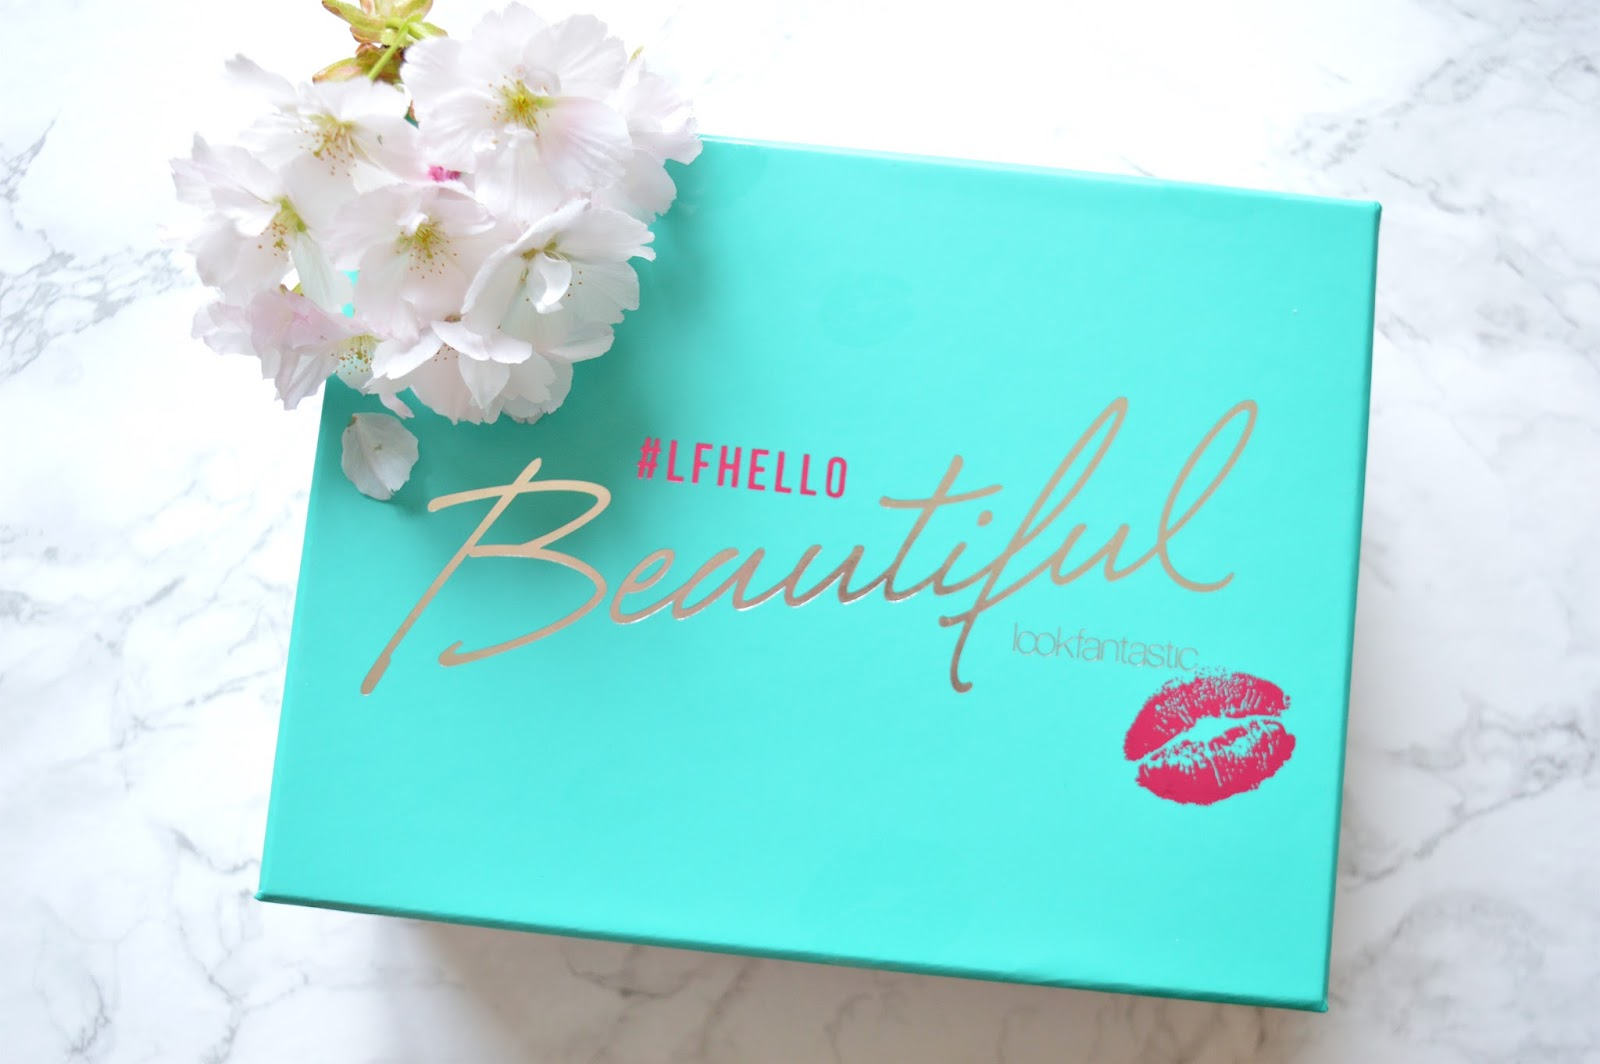 Lookfantastic #LFHELLOBEAUTIFUL Beauty Box